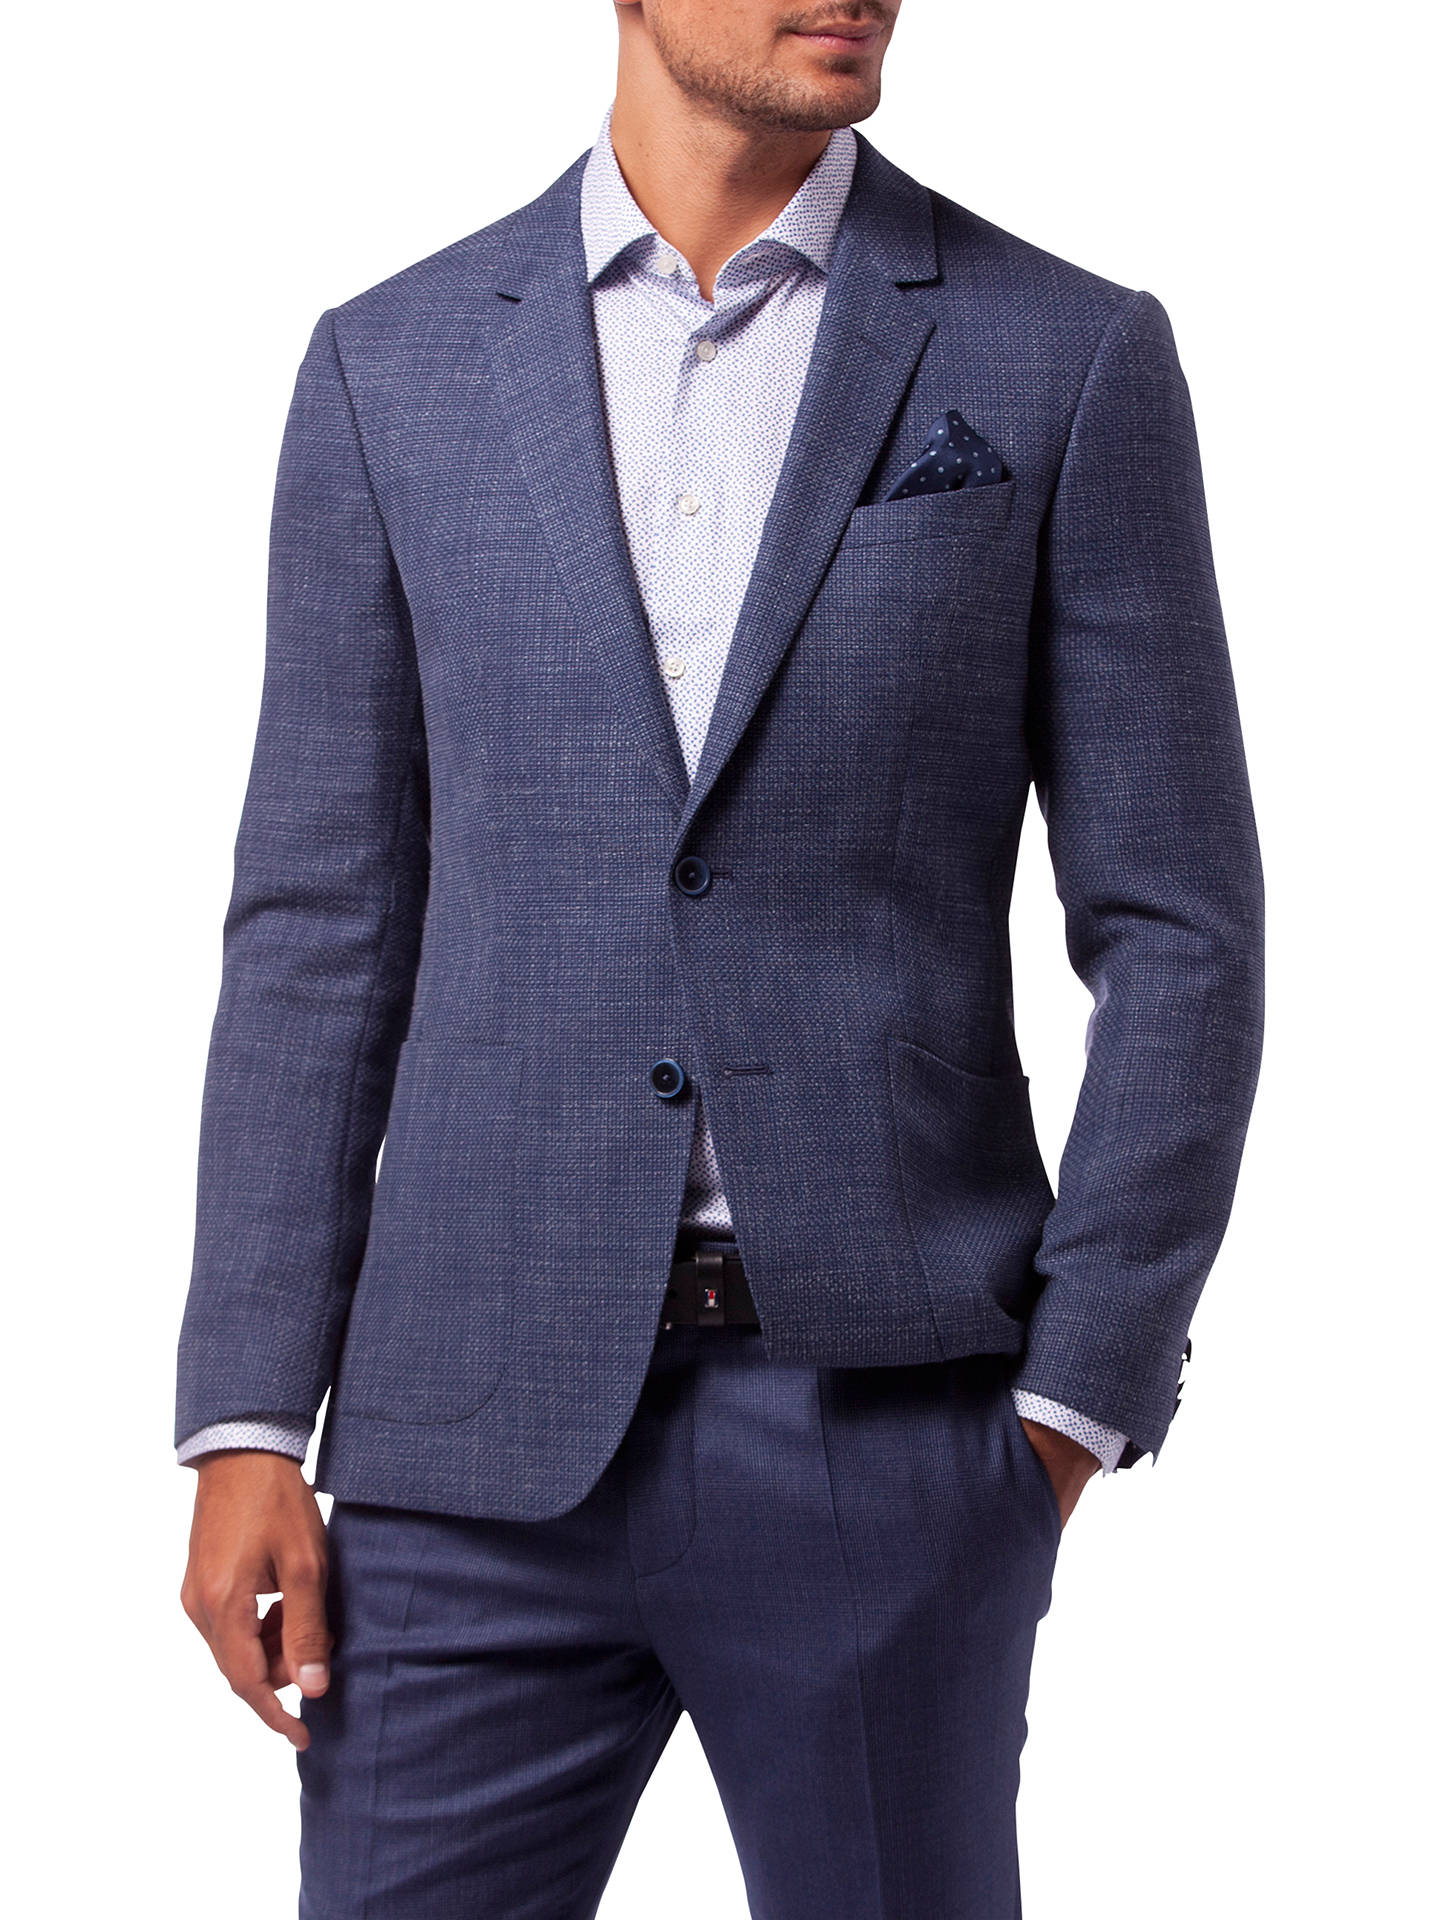 reliable quality amazing selection top quality Tommy Hilfiger Virgin Wool-Blend Slim Fit Blazer, Indigo at ...